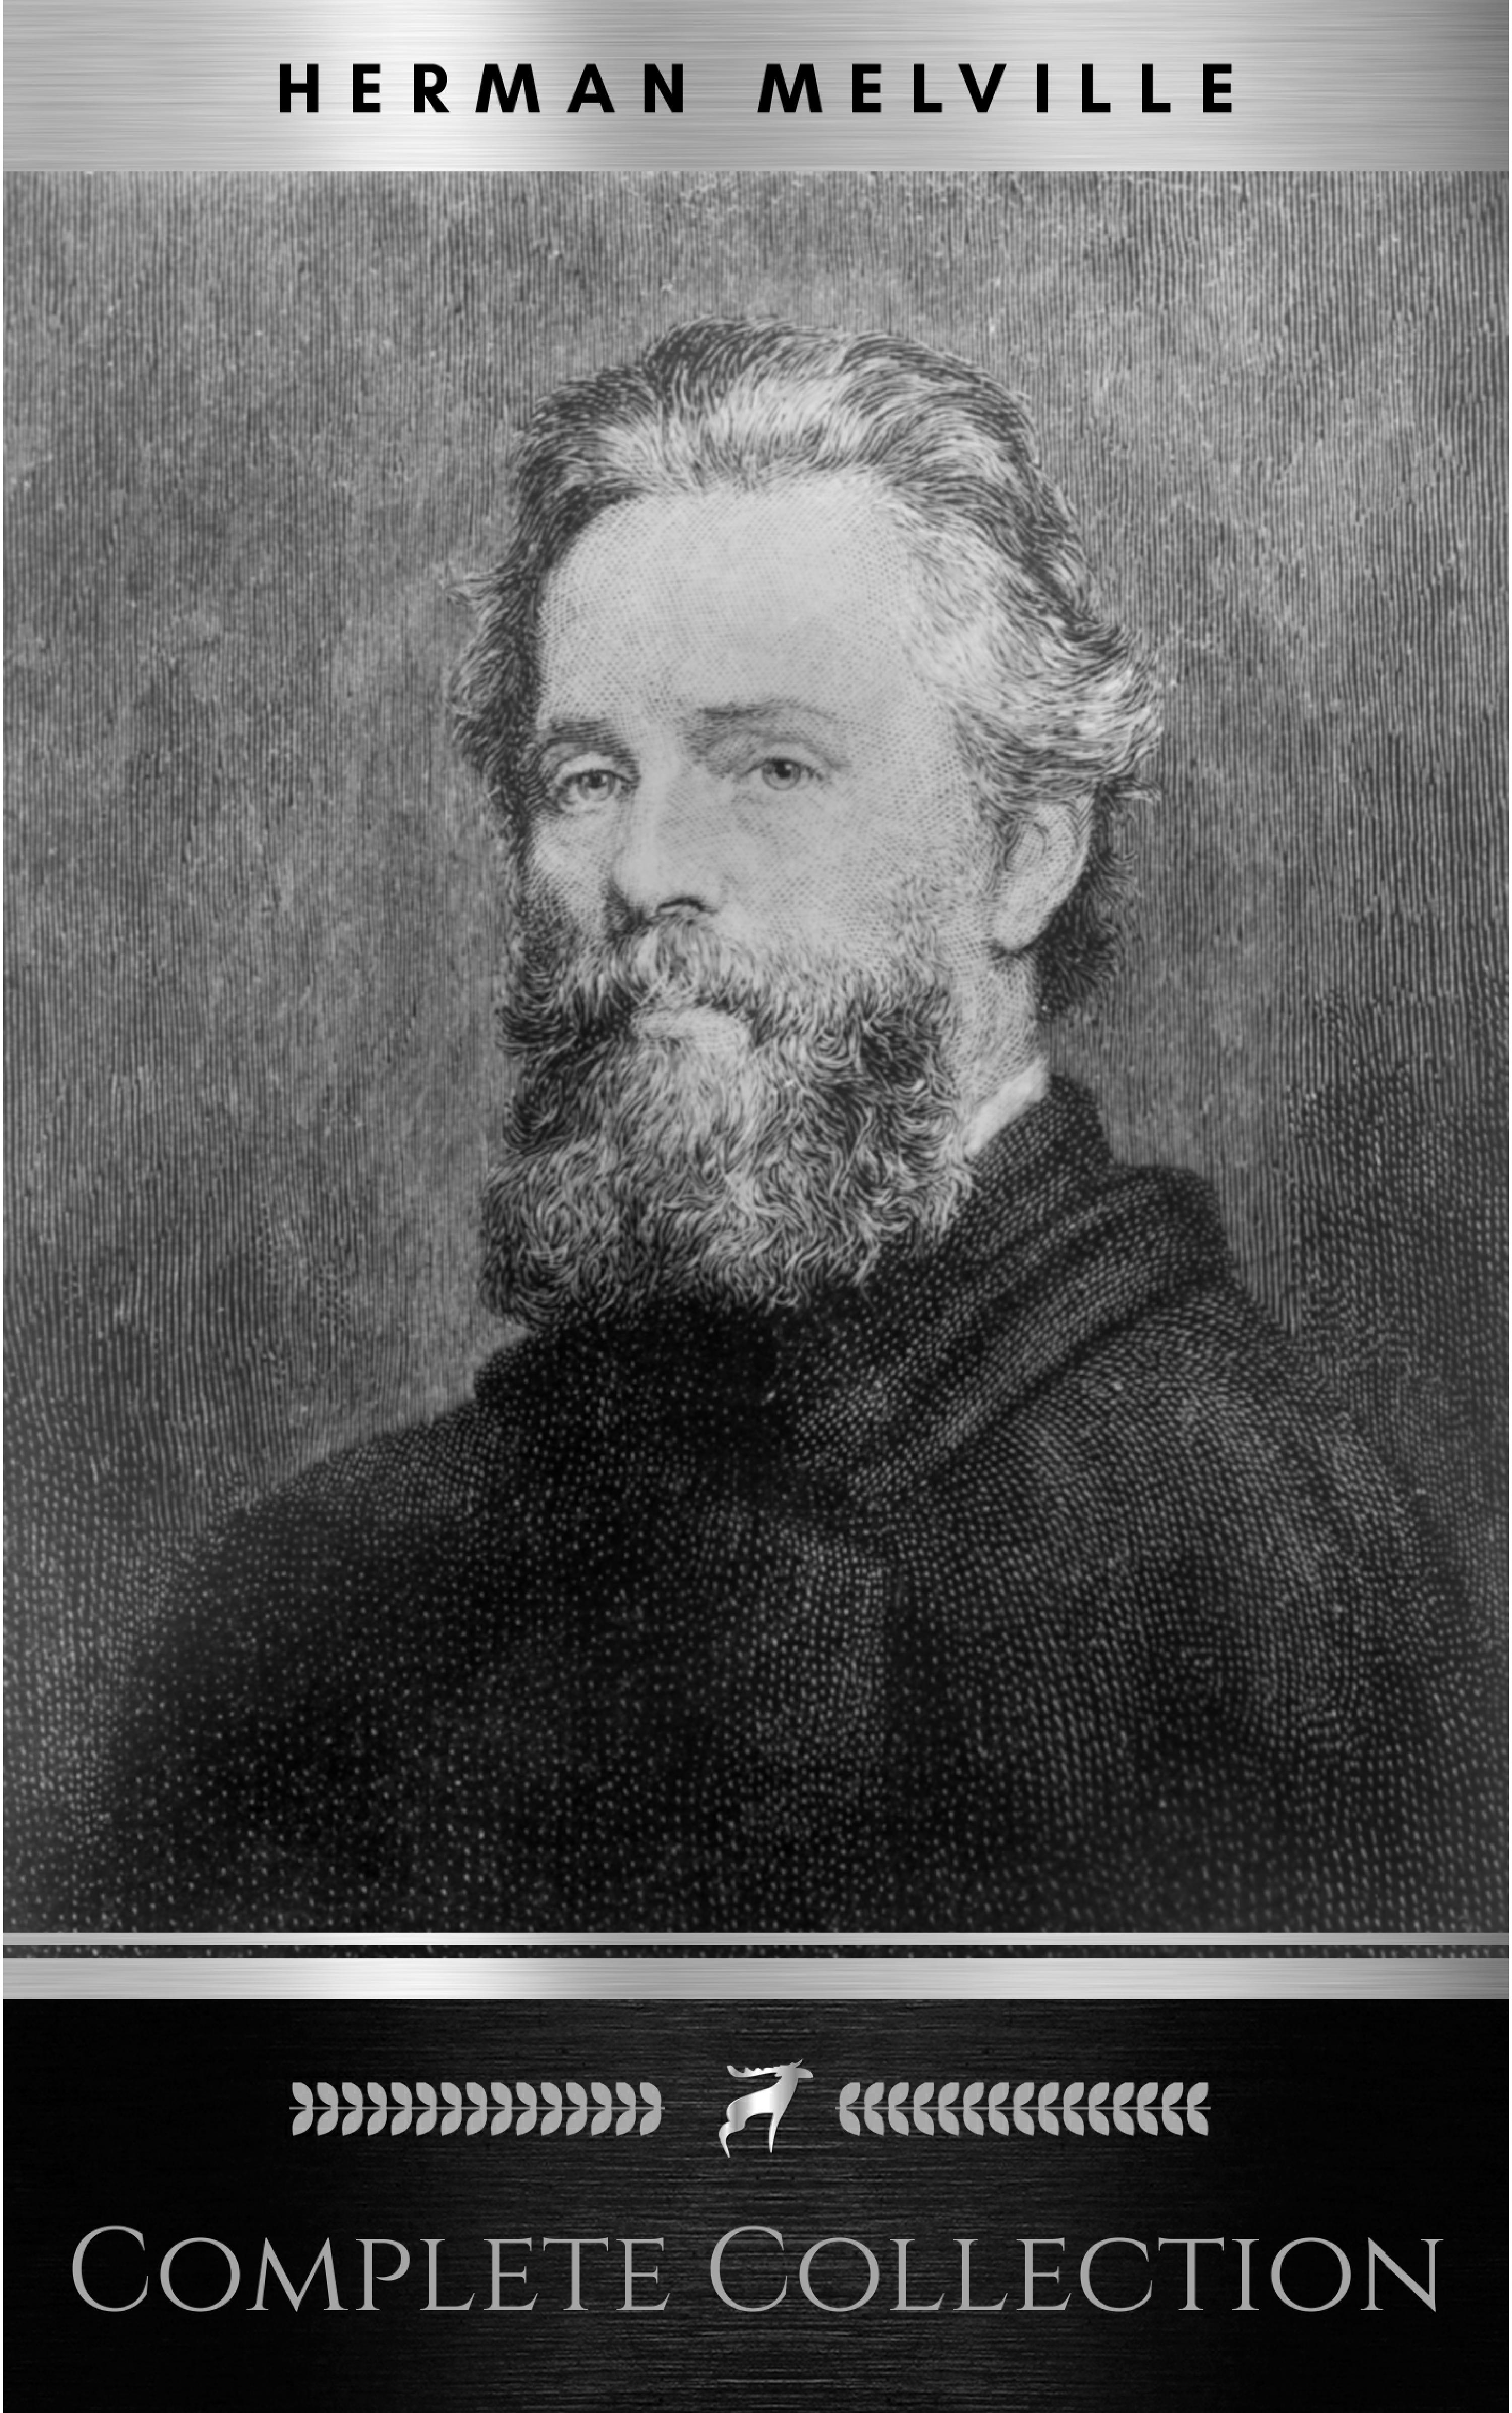 Herman Melville THE HERMAN MELVILLE BOOK: (12 CLASSIC ADVENTURE STORIES), TYPEE,OMOO,REDBURN, WHITE JACKET,MOBY DICK,ISRAEL POTTER,PIERRE …: Classic Adventure Stories melville herman the apple tree table and other sketches